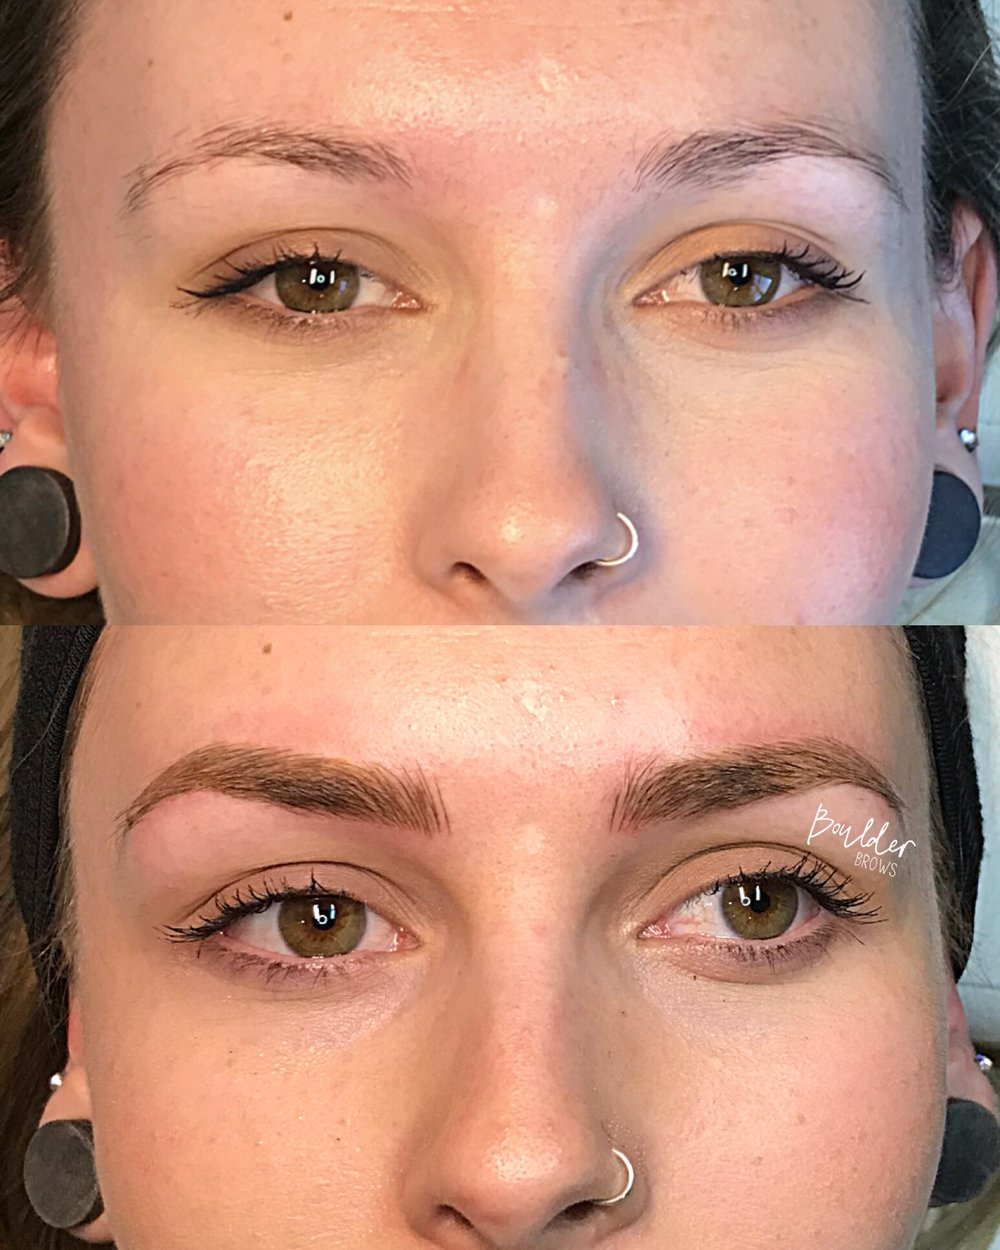 2ND MICROBLADING SESSION  BY JESS Top: Healed After 1st Session | Bottom: Immediately After Touchup